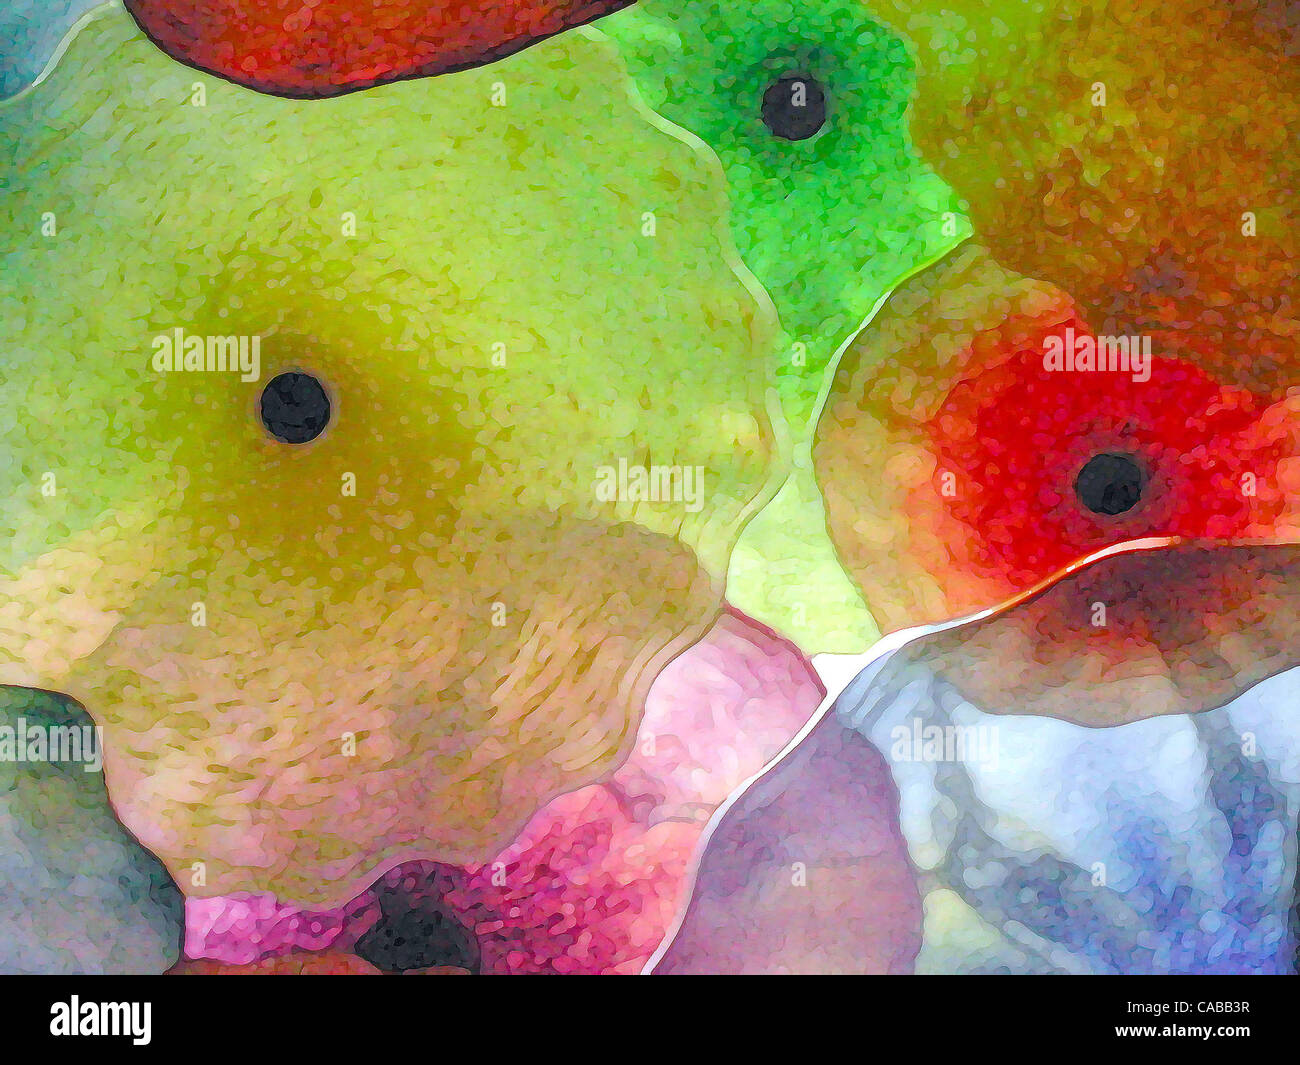 Jun 03, 2004; Los Angeles, CA, USA; Abstract glass flowers. Stock Photo